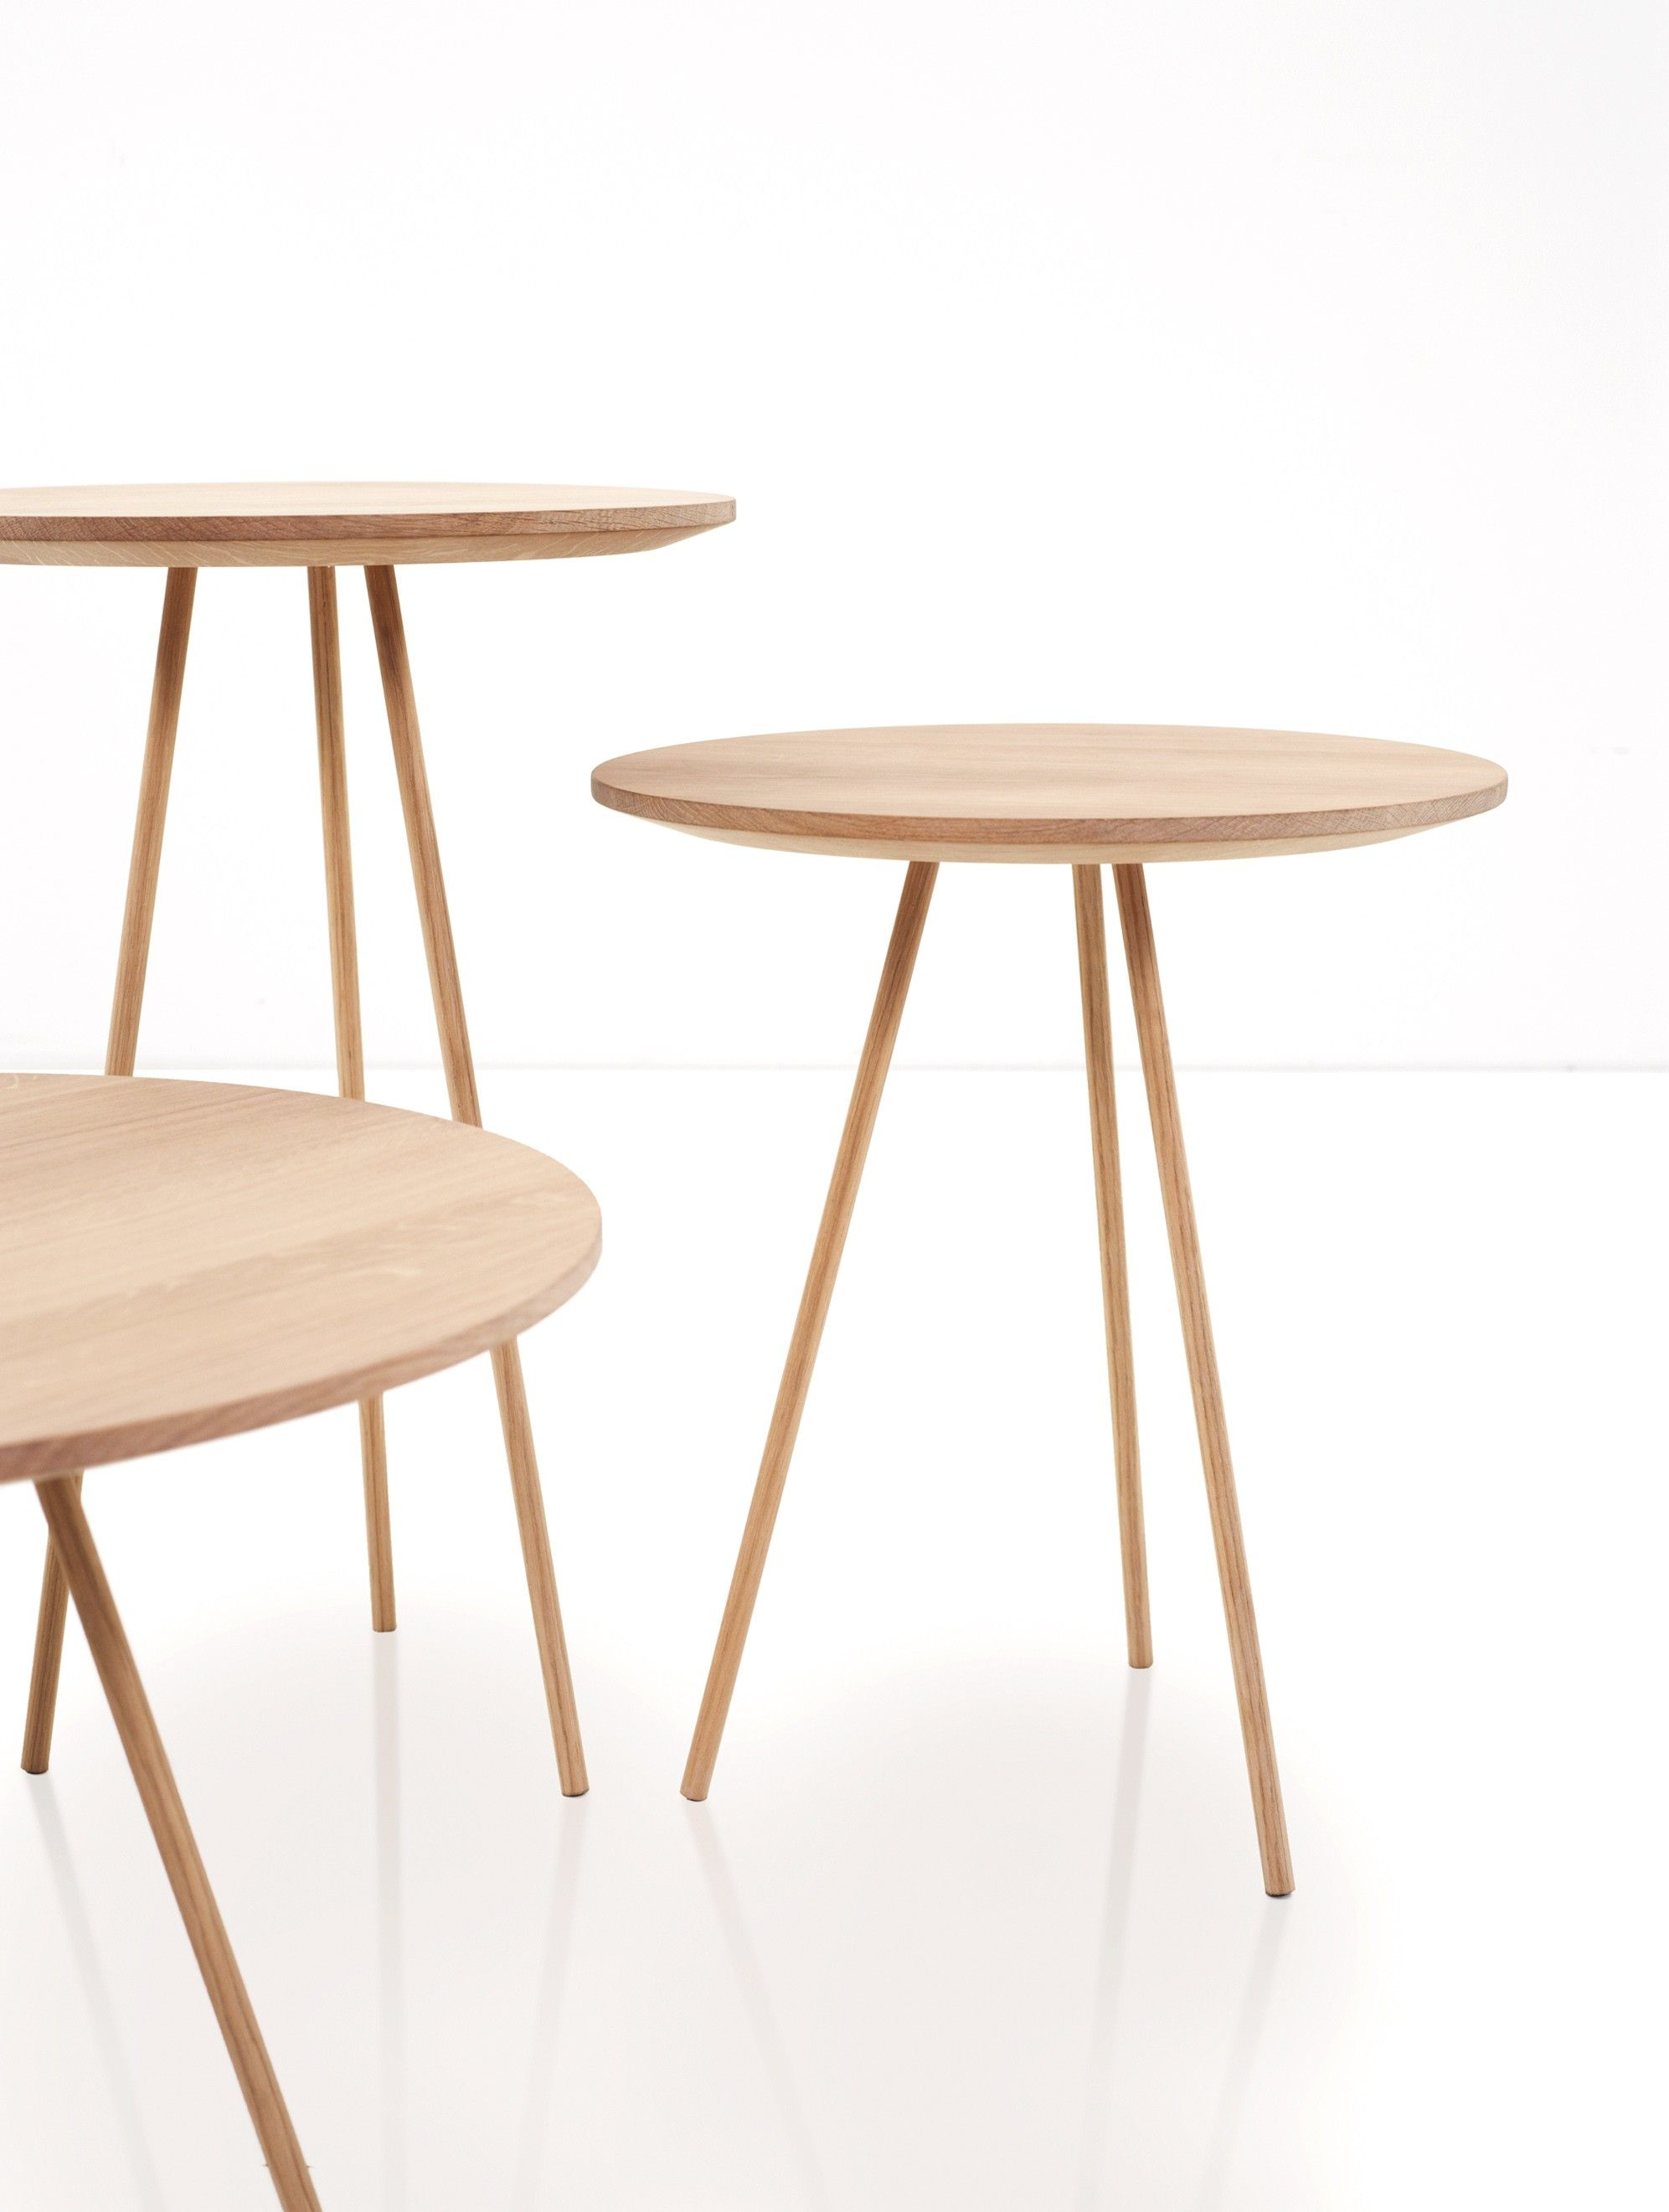 The minimalist drip side table was designed by bernhard m ller for his label more as a single coffee table in your living room or as a side table combined